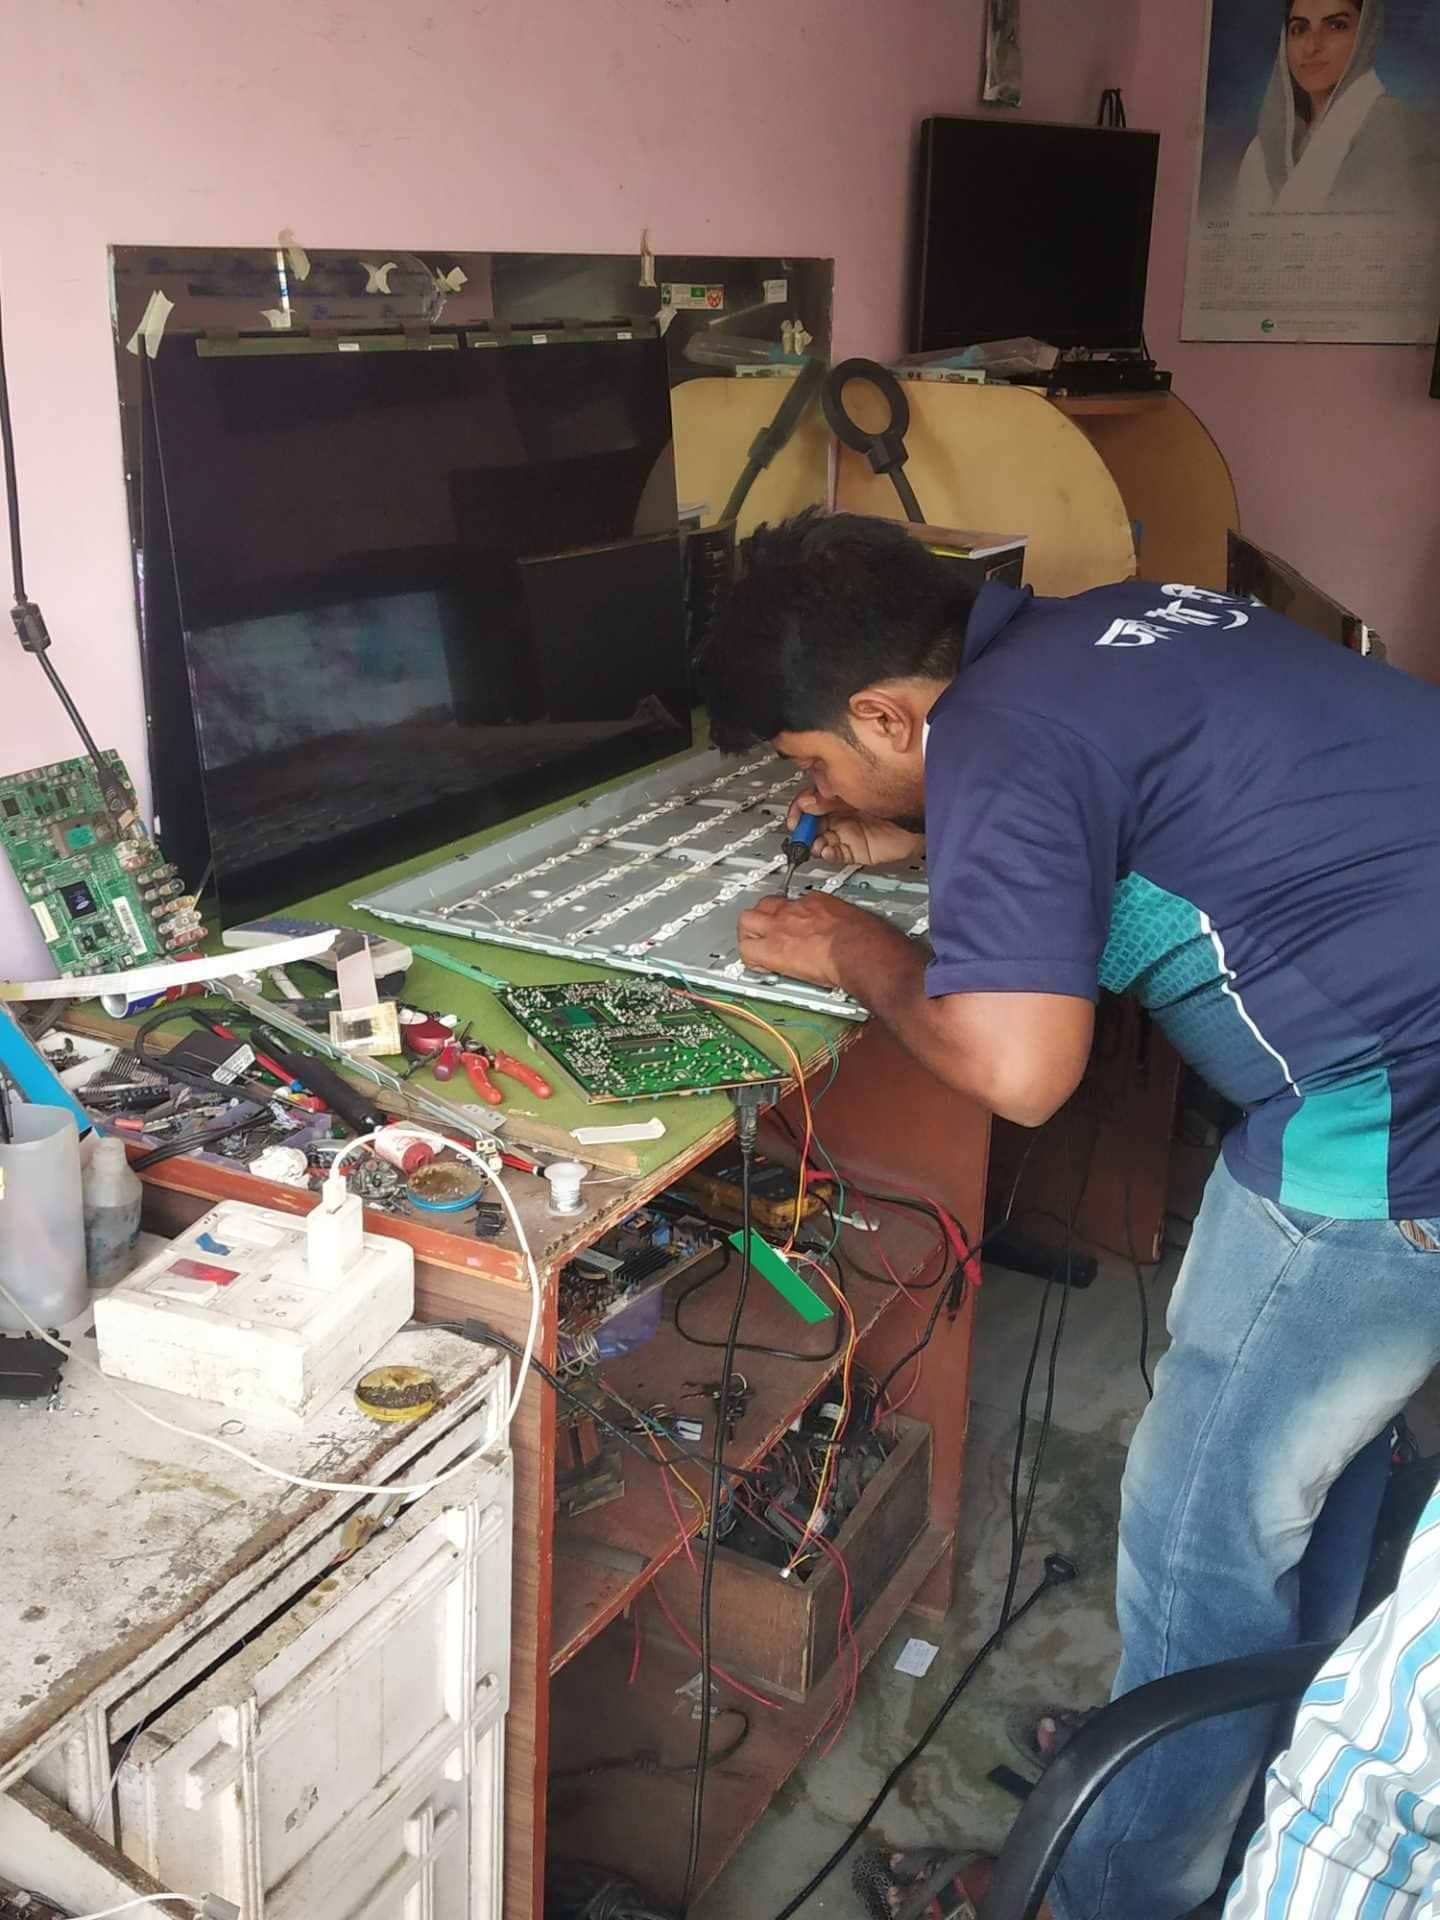 Top 30 LG LED TV Repair Services in New Panvel - Best LG LED